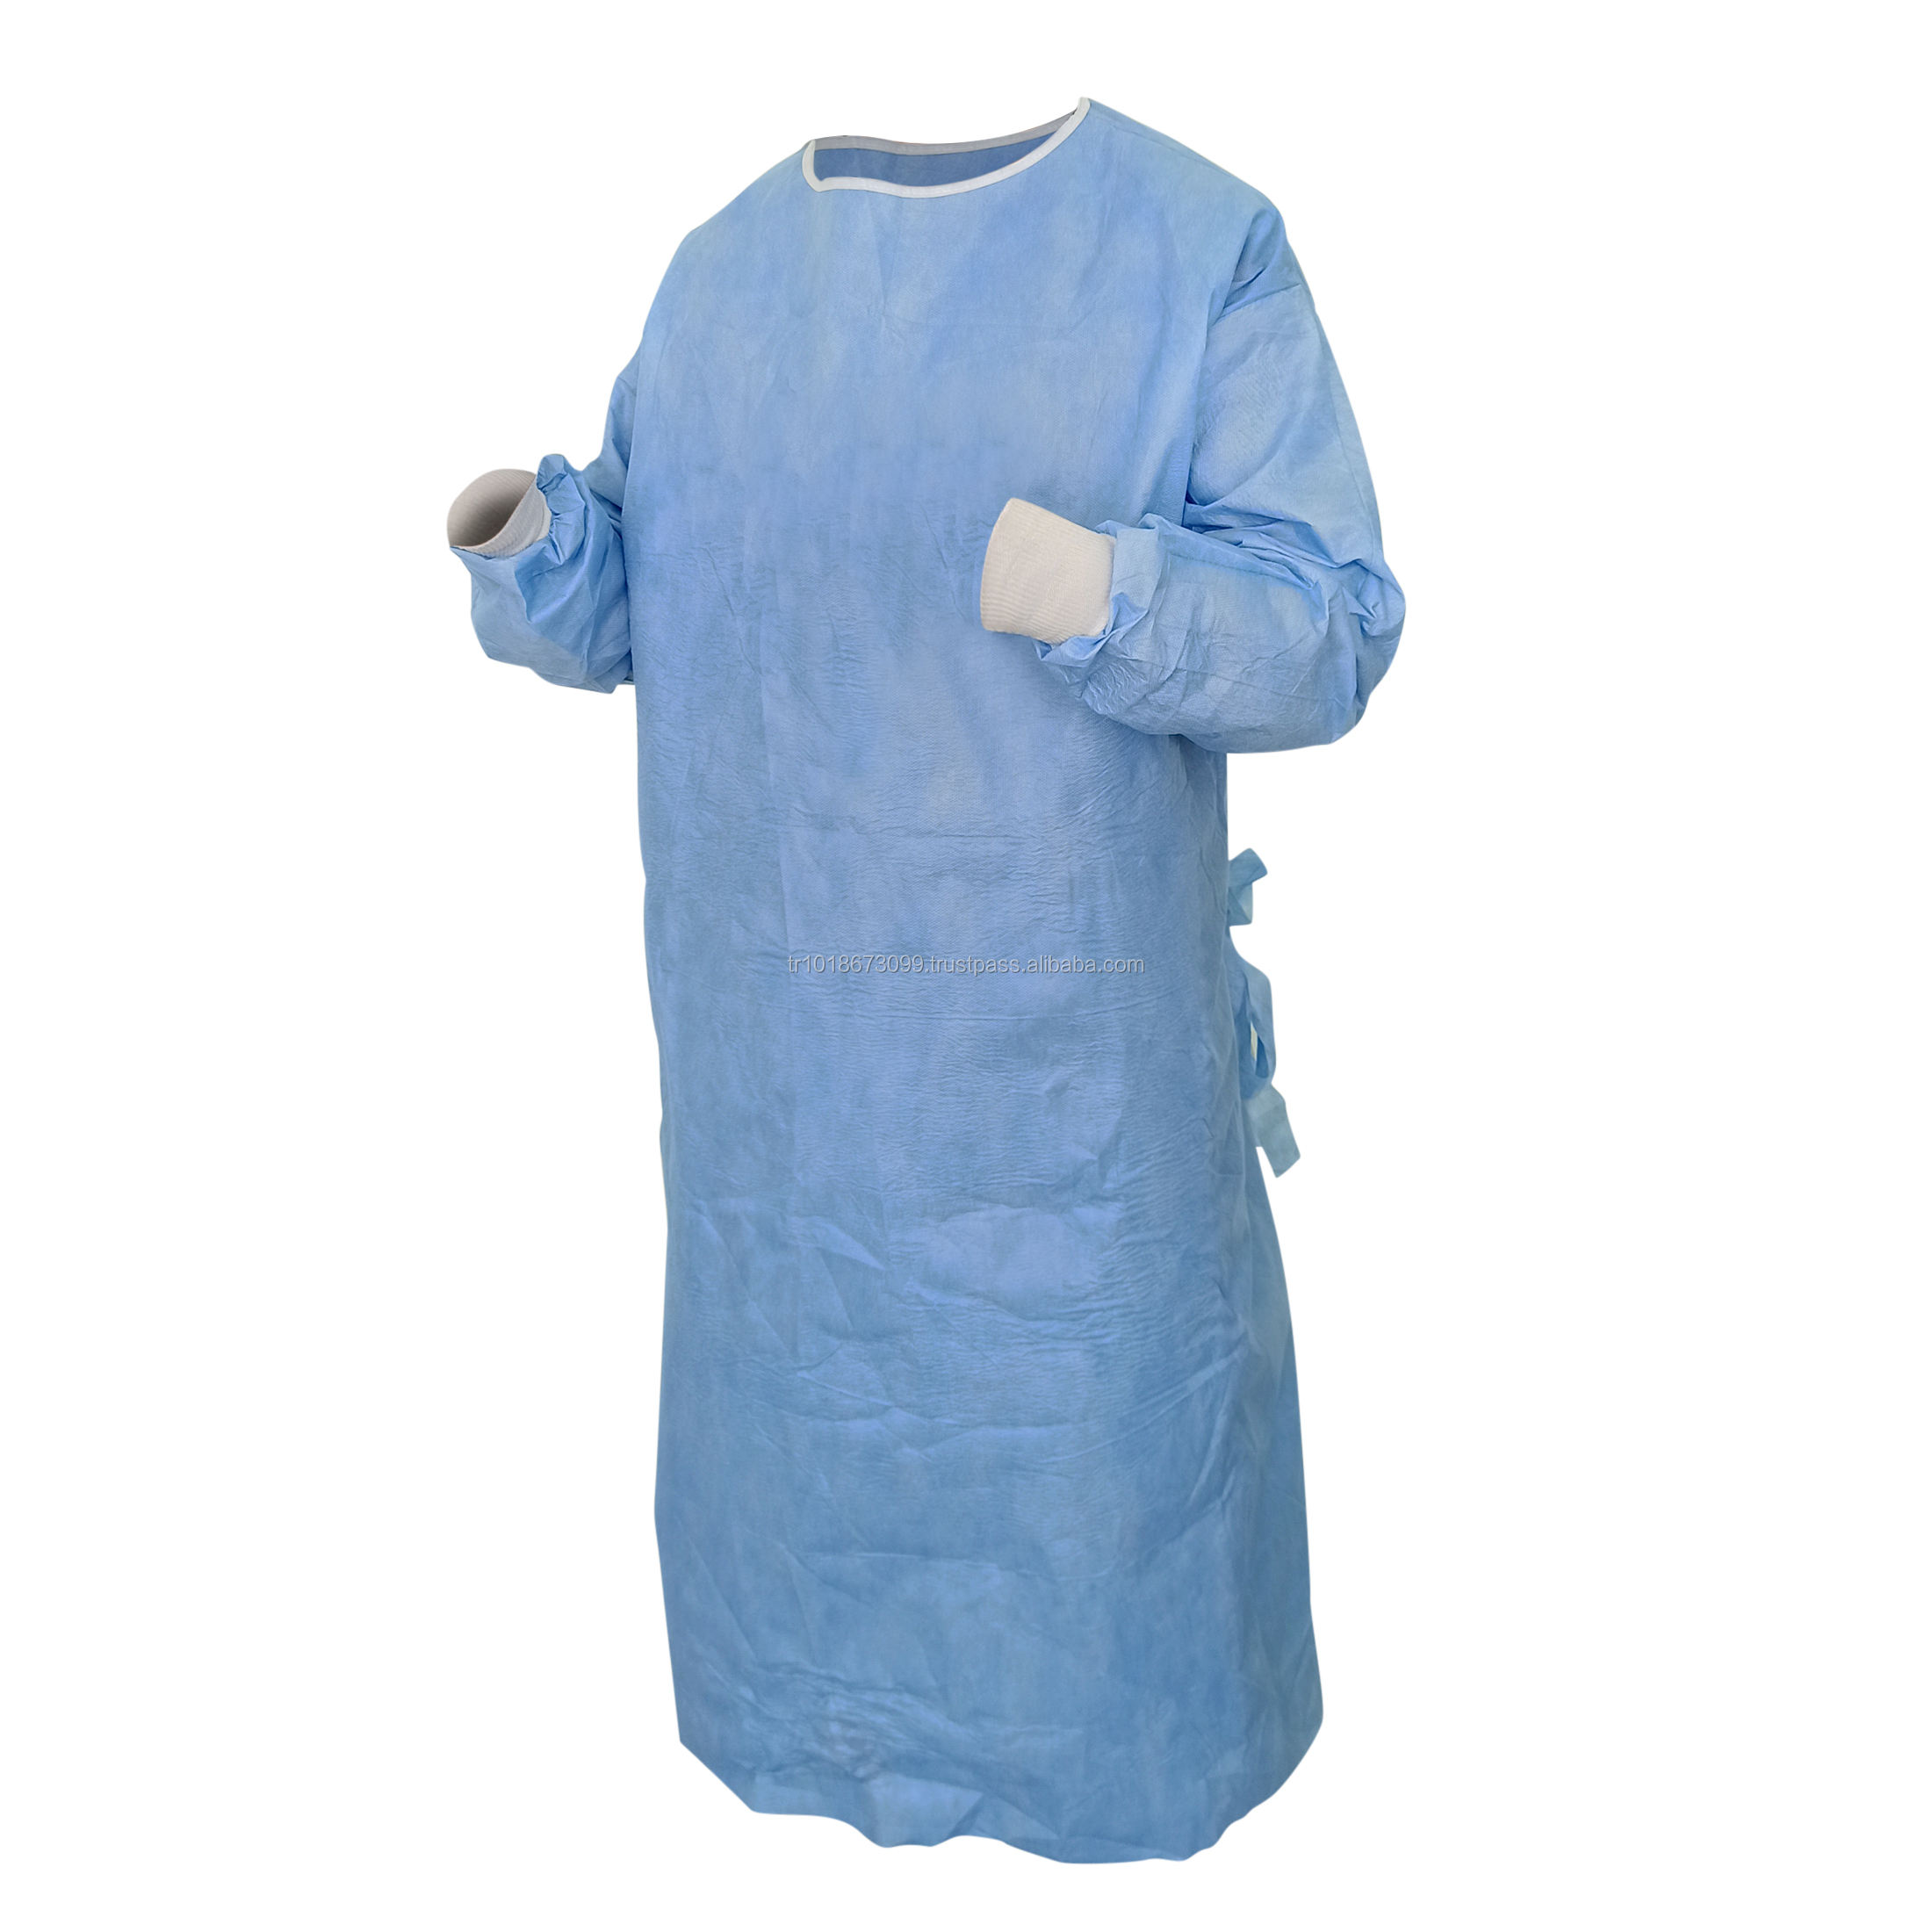 Disposable Surgical Gown from Turkey - Ready Stock, Immediate shipment